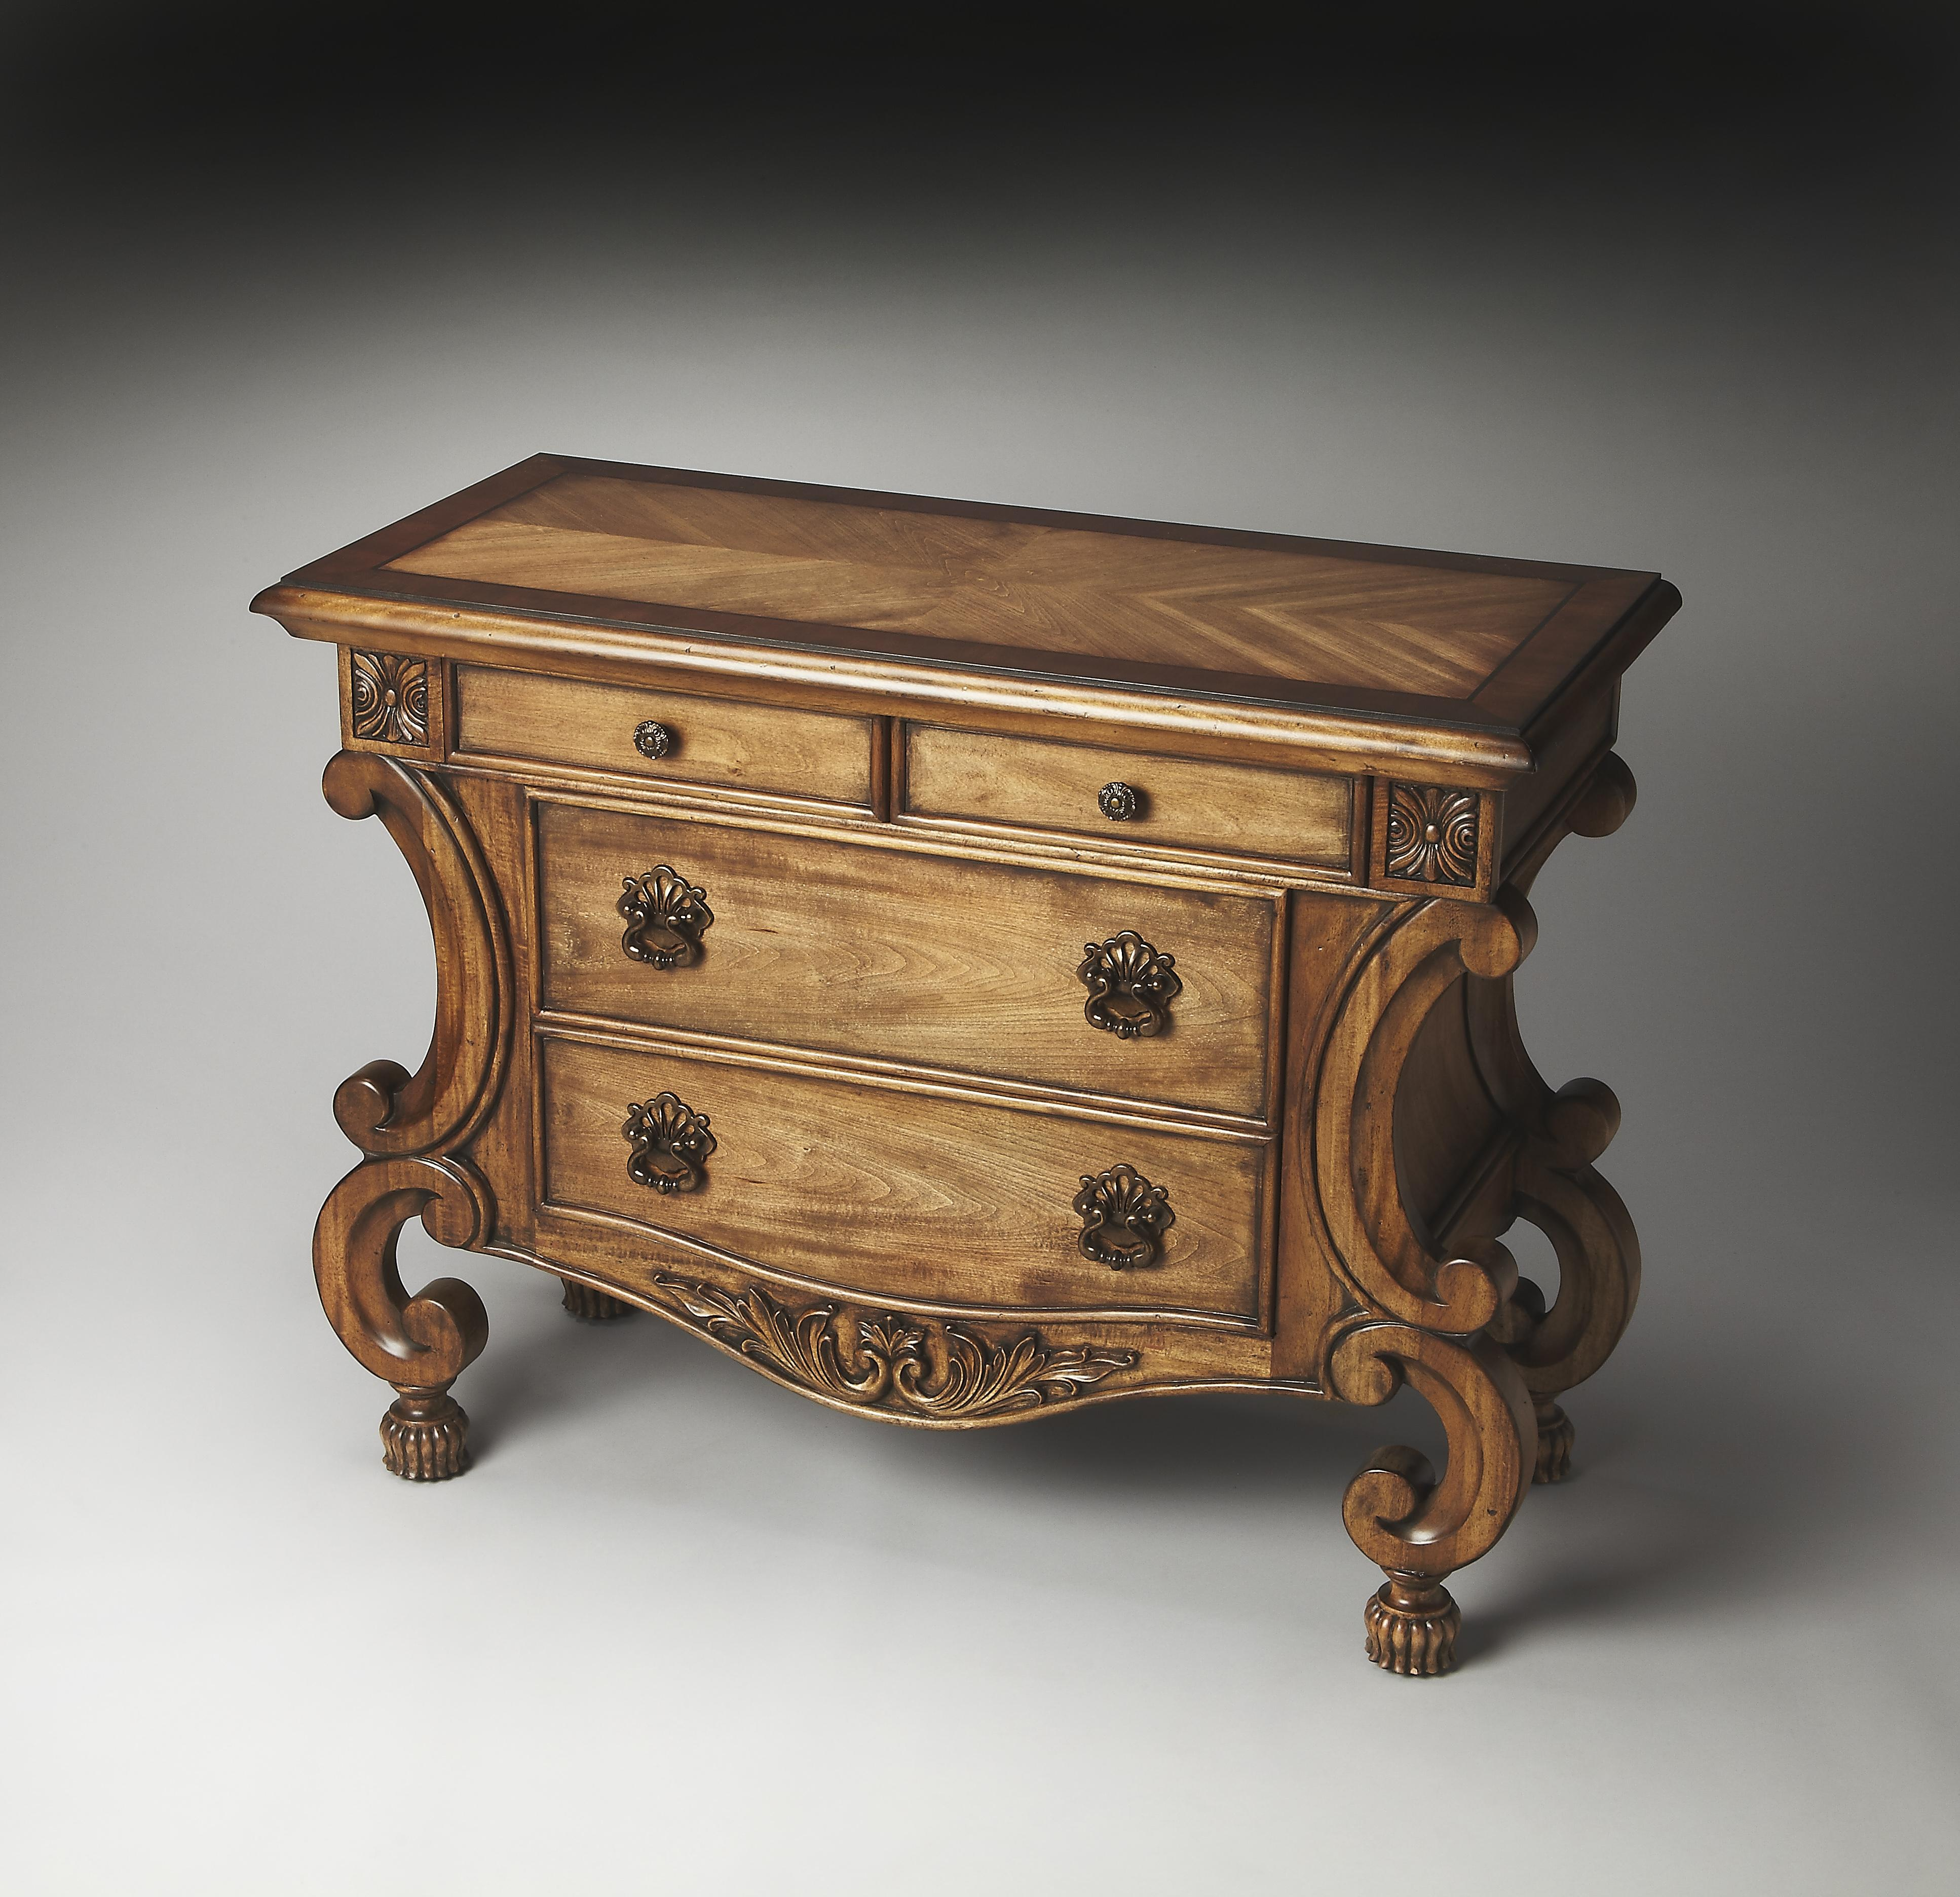 Butler Specialty Company Connoisseur's Console Chest - Item Number: 2525090